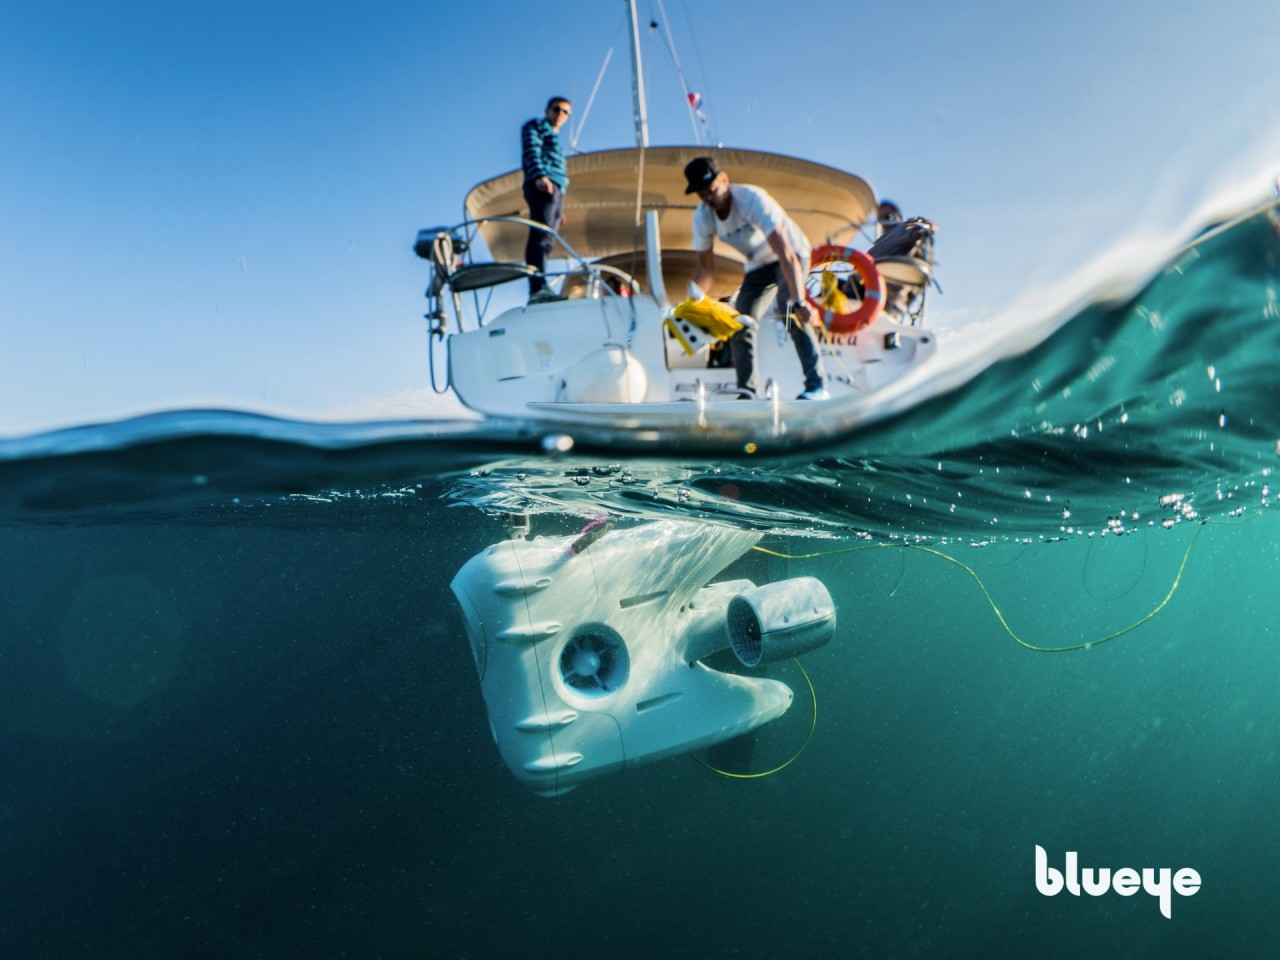 PioneerOne drone launched into the blue Adriatic sea from the back of a sailboat